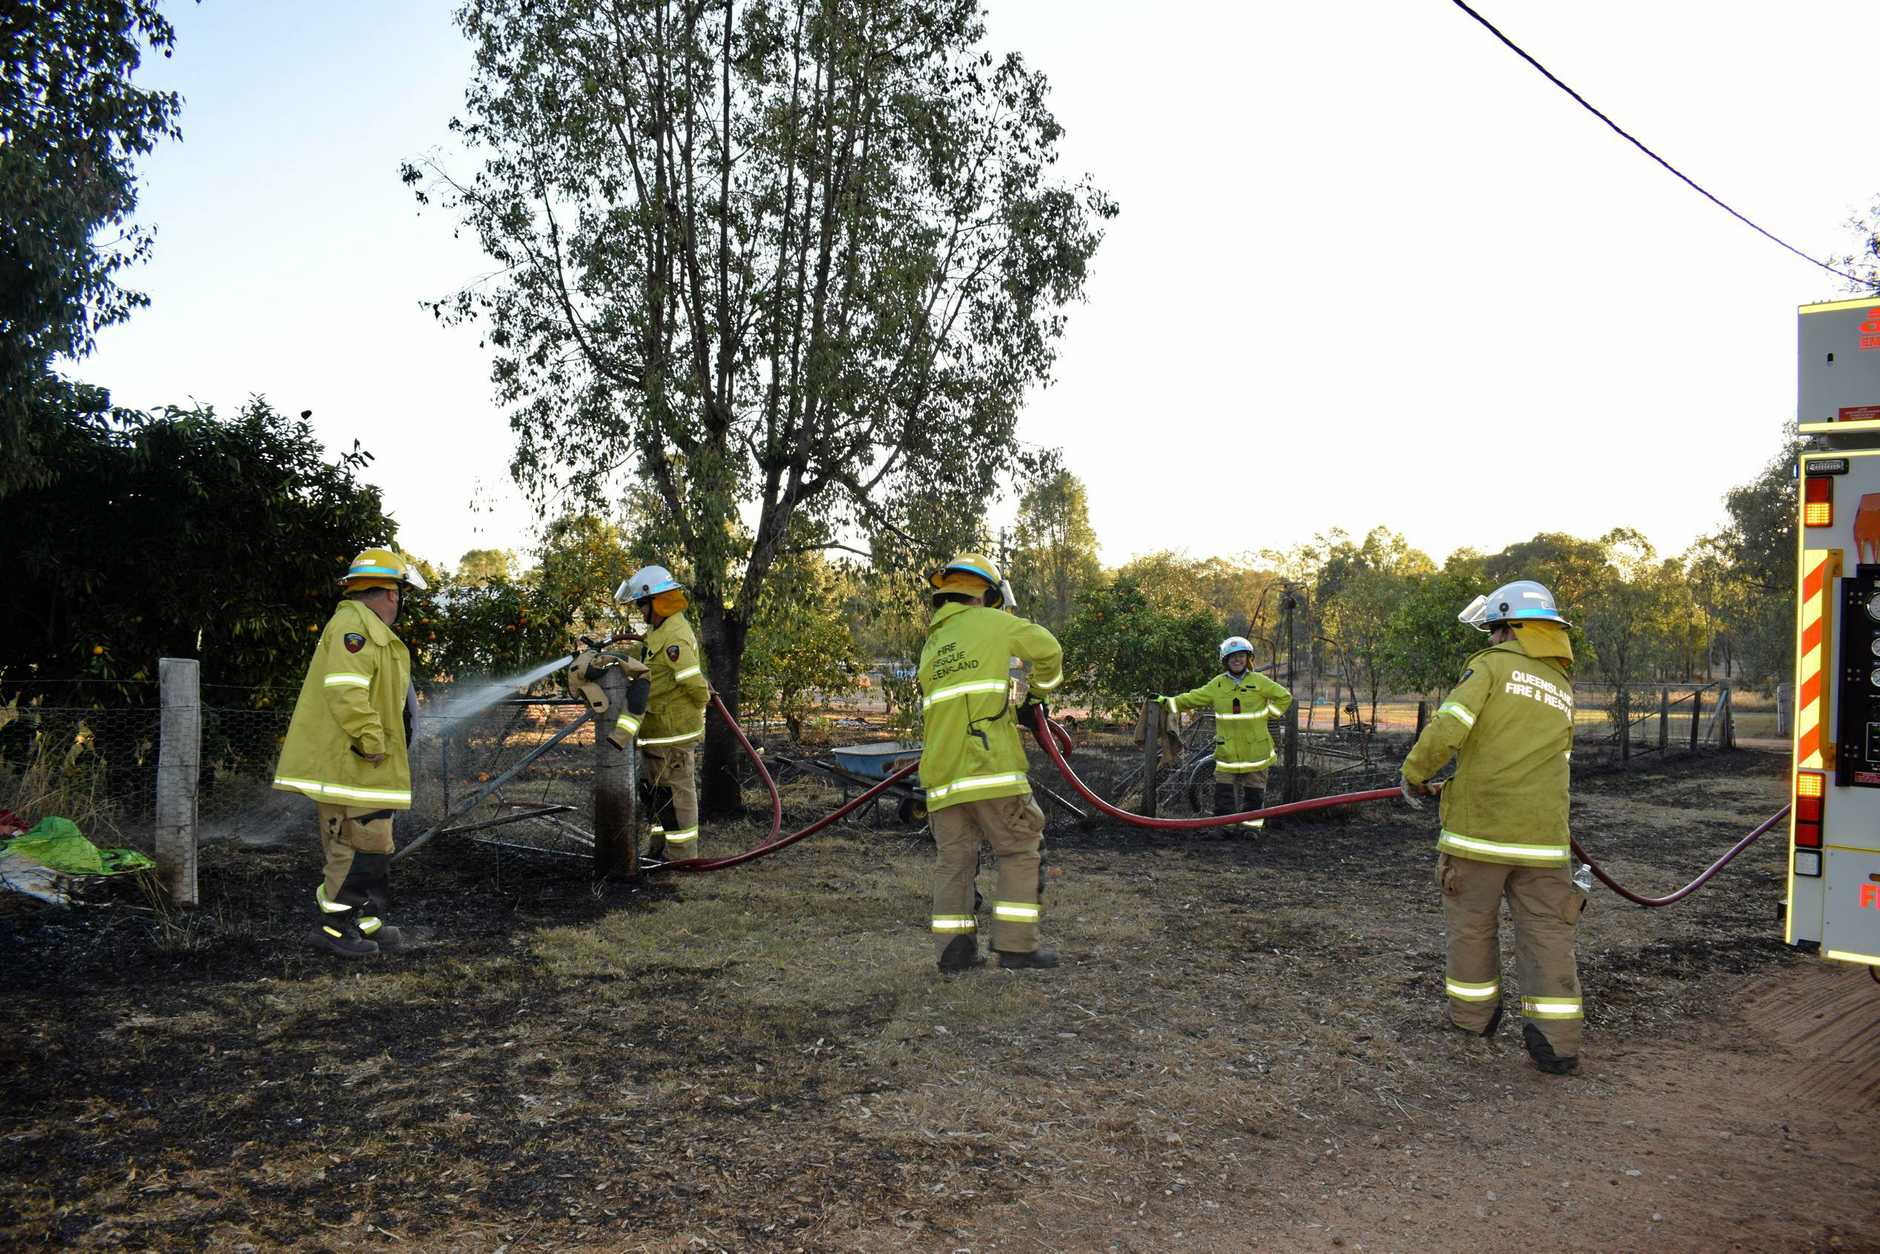 BACKYARD BLAZE: A backyard grass fire was ignited at a residence on Creek St just outside of Chinchilla last week after an elderly resident started the blaze from welding outside.